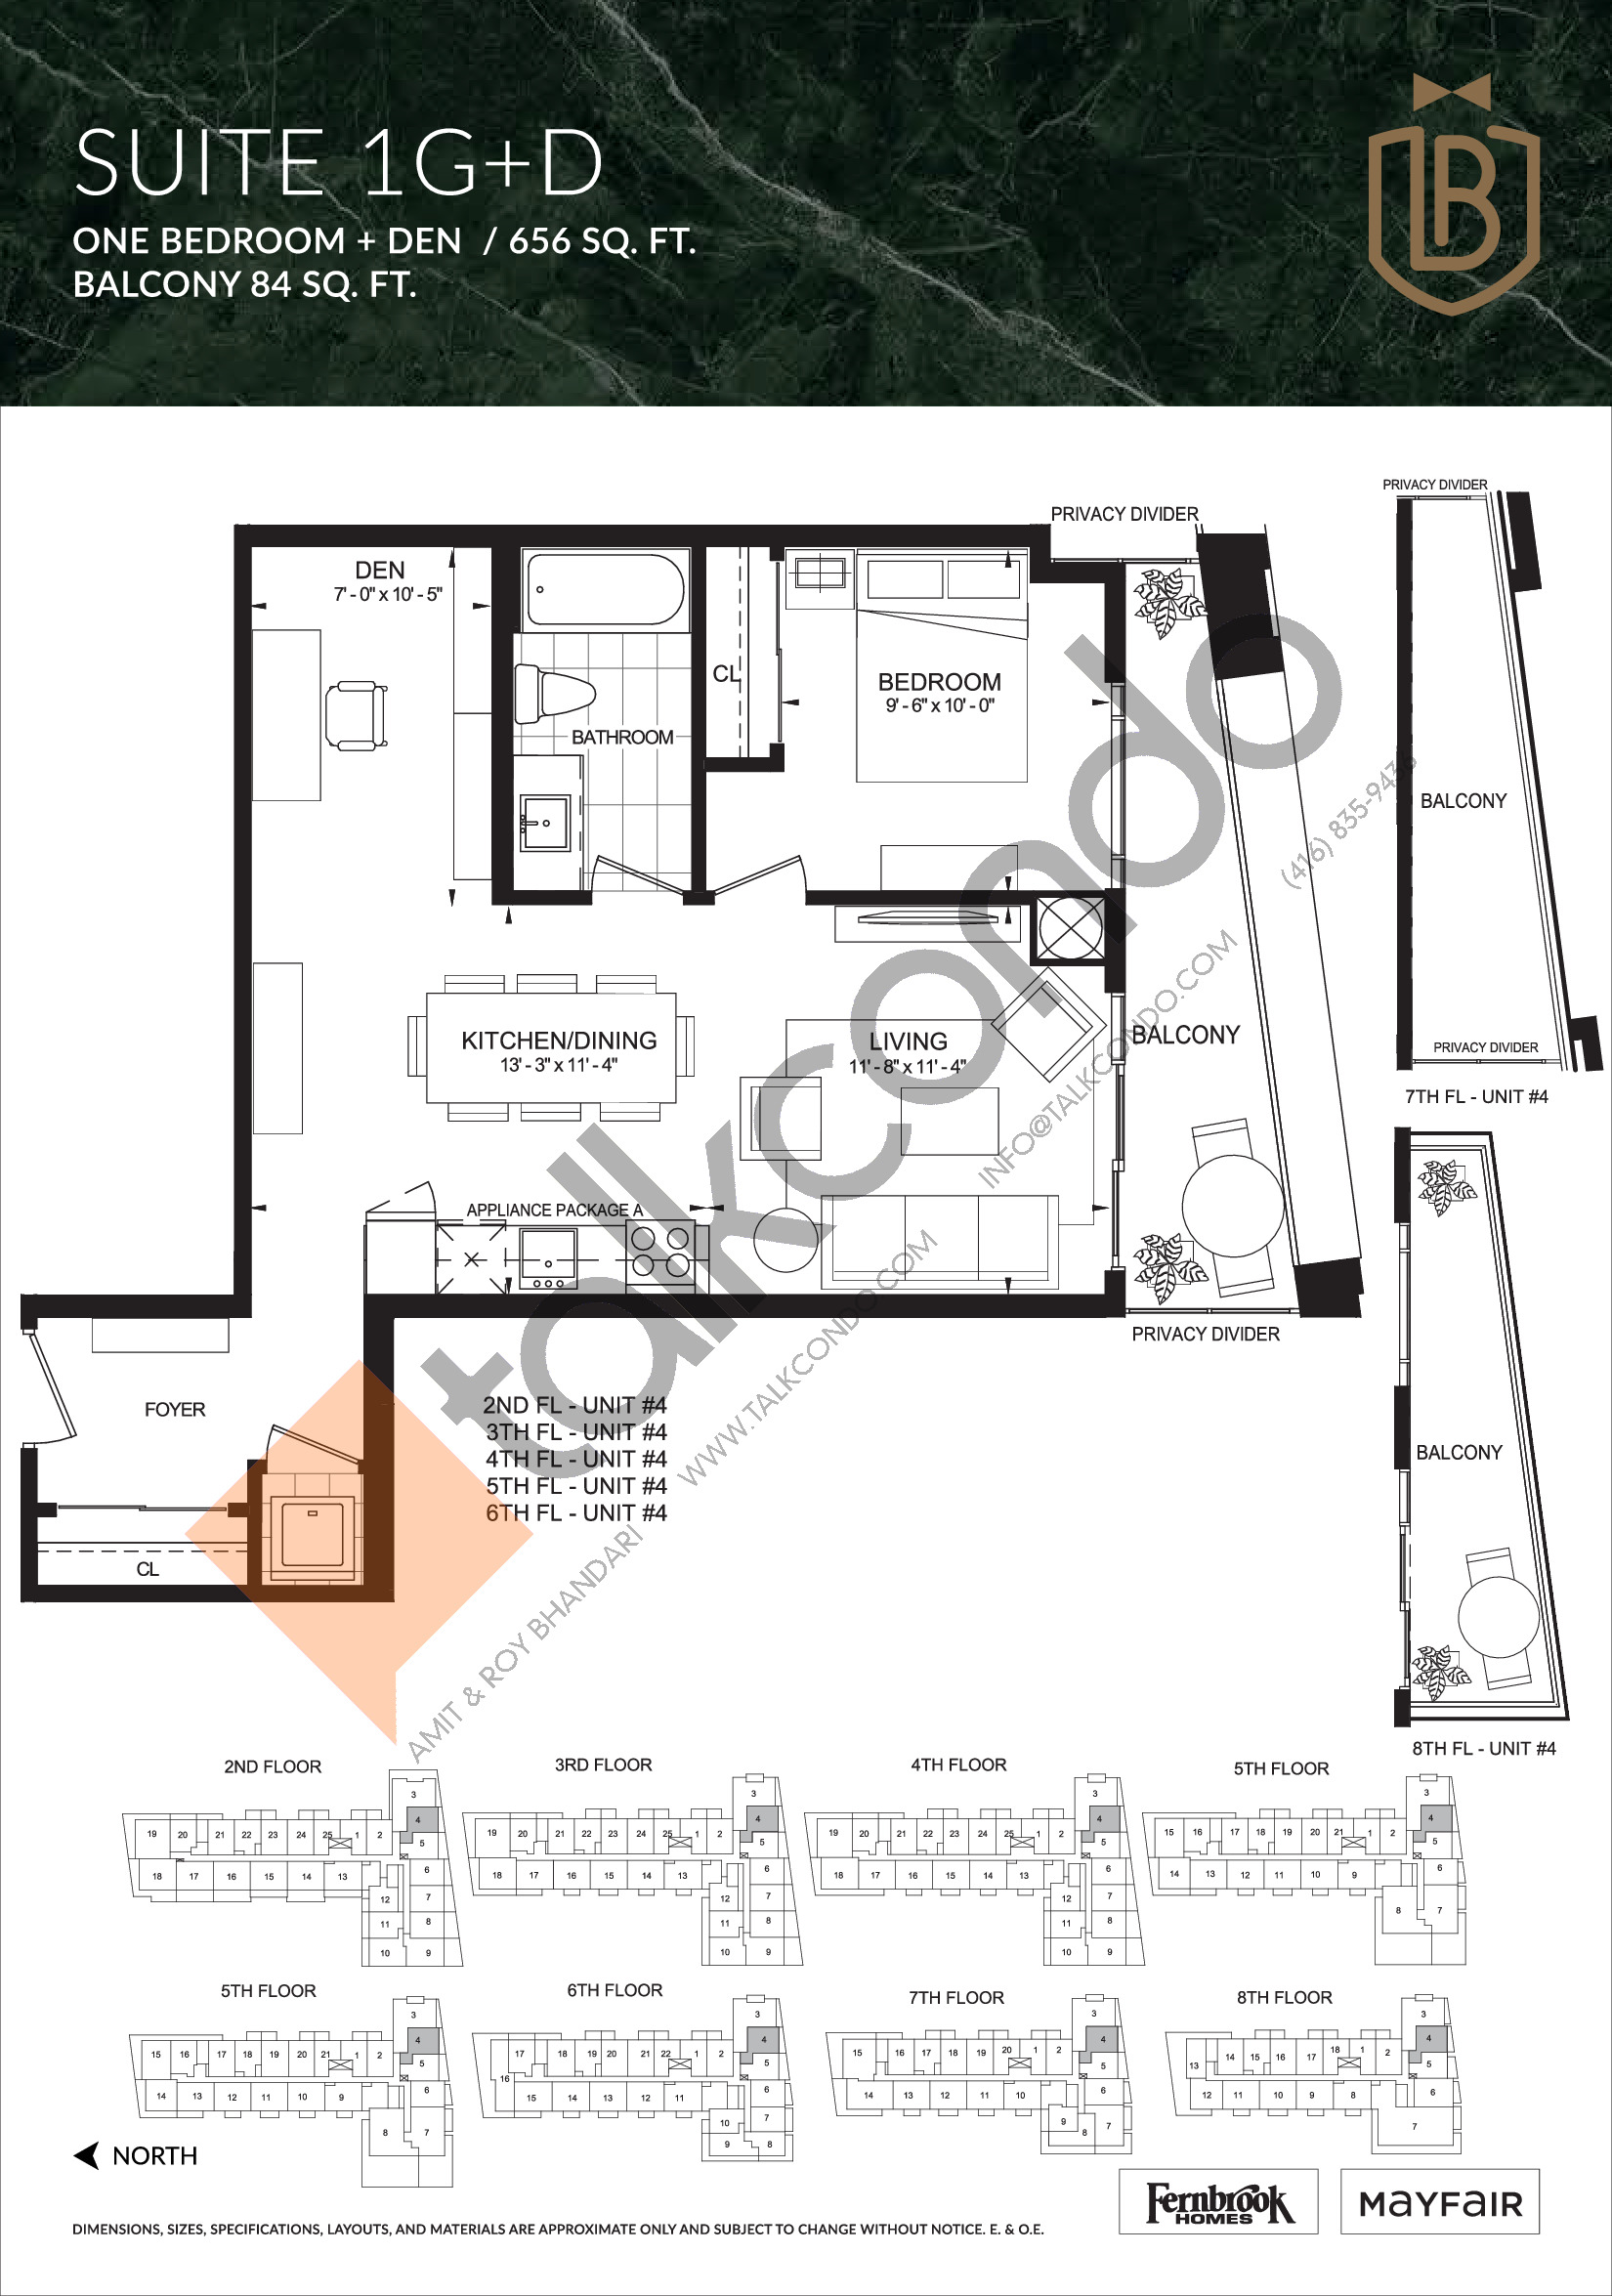 Suite 1G+D Floor Plan at The Butler Condos - 656 sq.ft